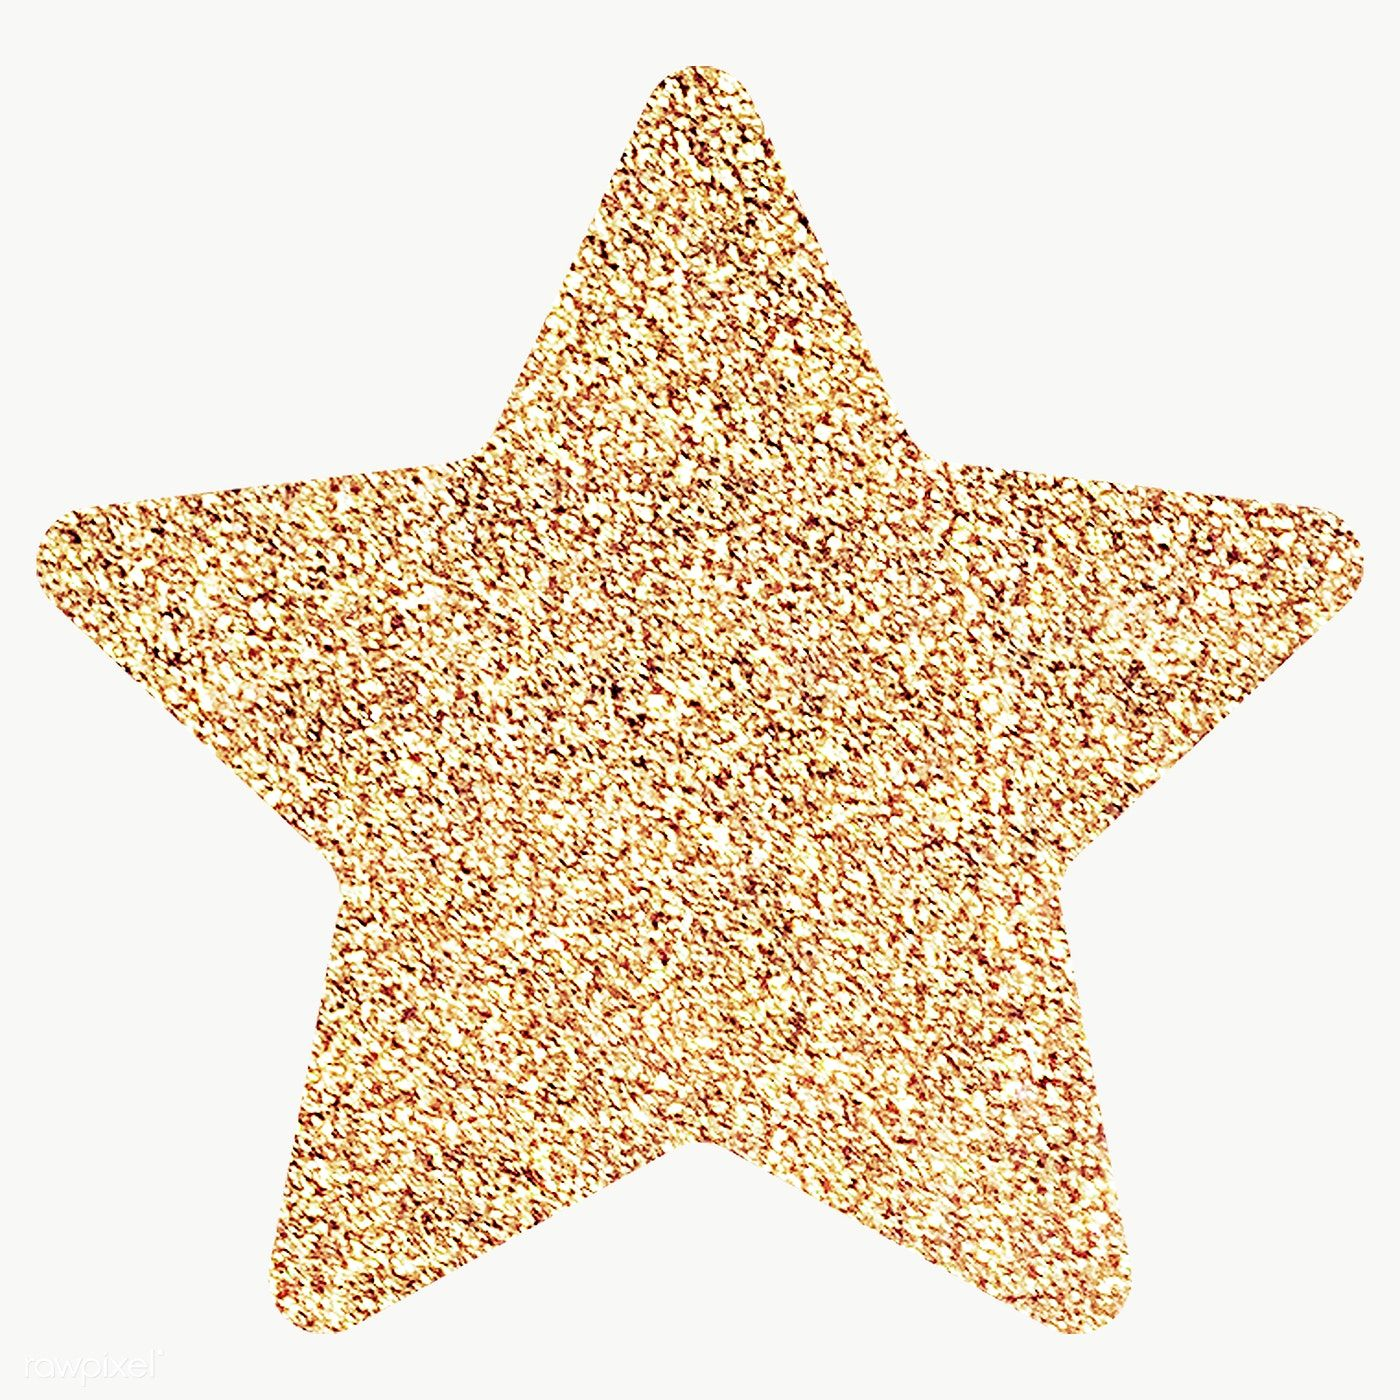 Glitter Star Sticker Transparent Png Free Image By Rawpixel Com Ningzk V Star Stickers Transparent Stickers Glitter Stickers